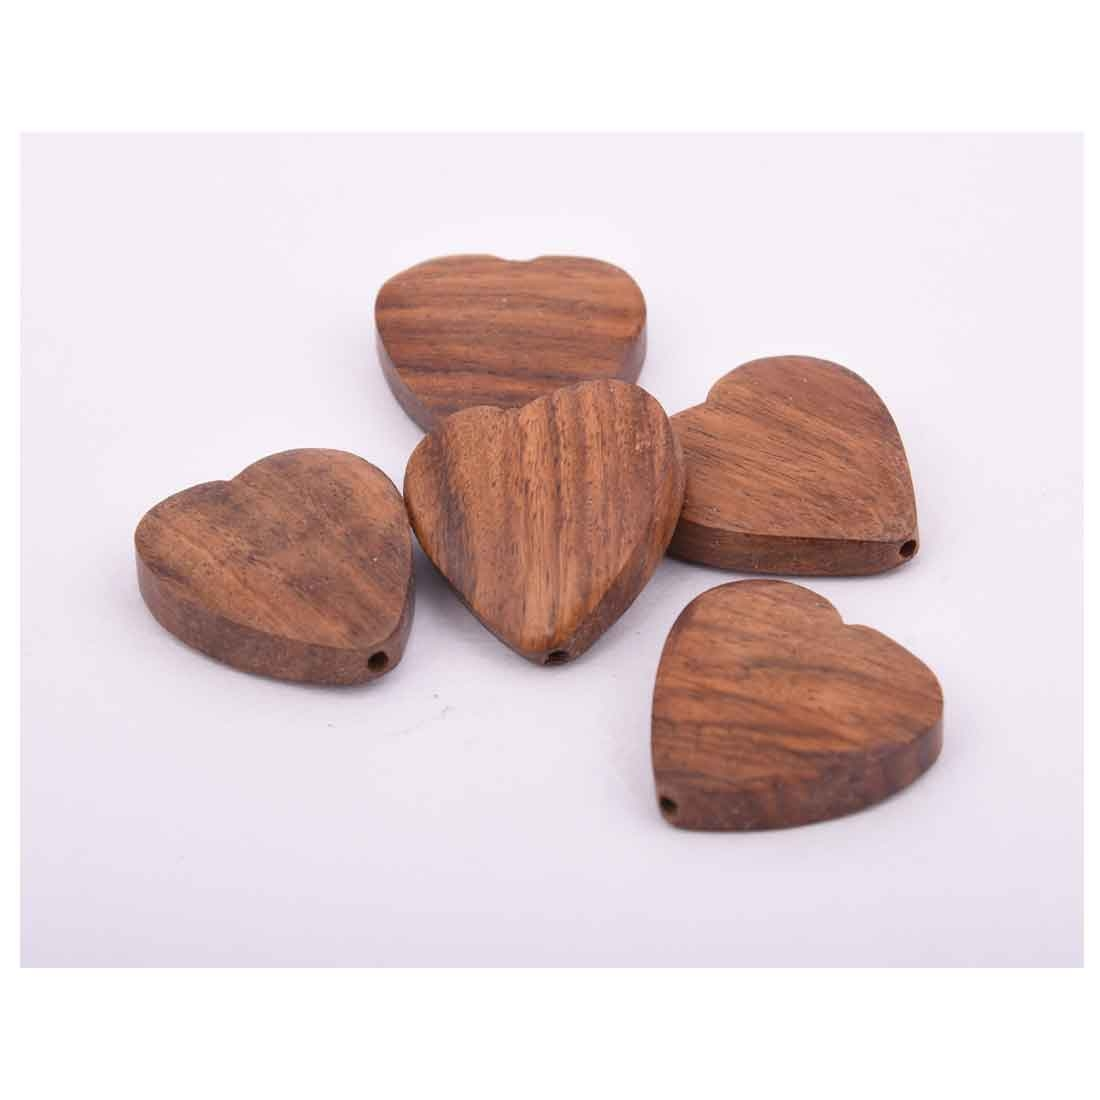 Beads India 1700014 Handcrafted Wooden Beads/Discounts Above 500 pcs